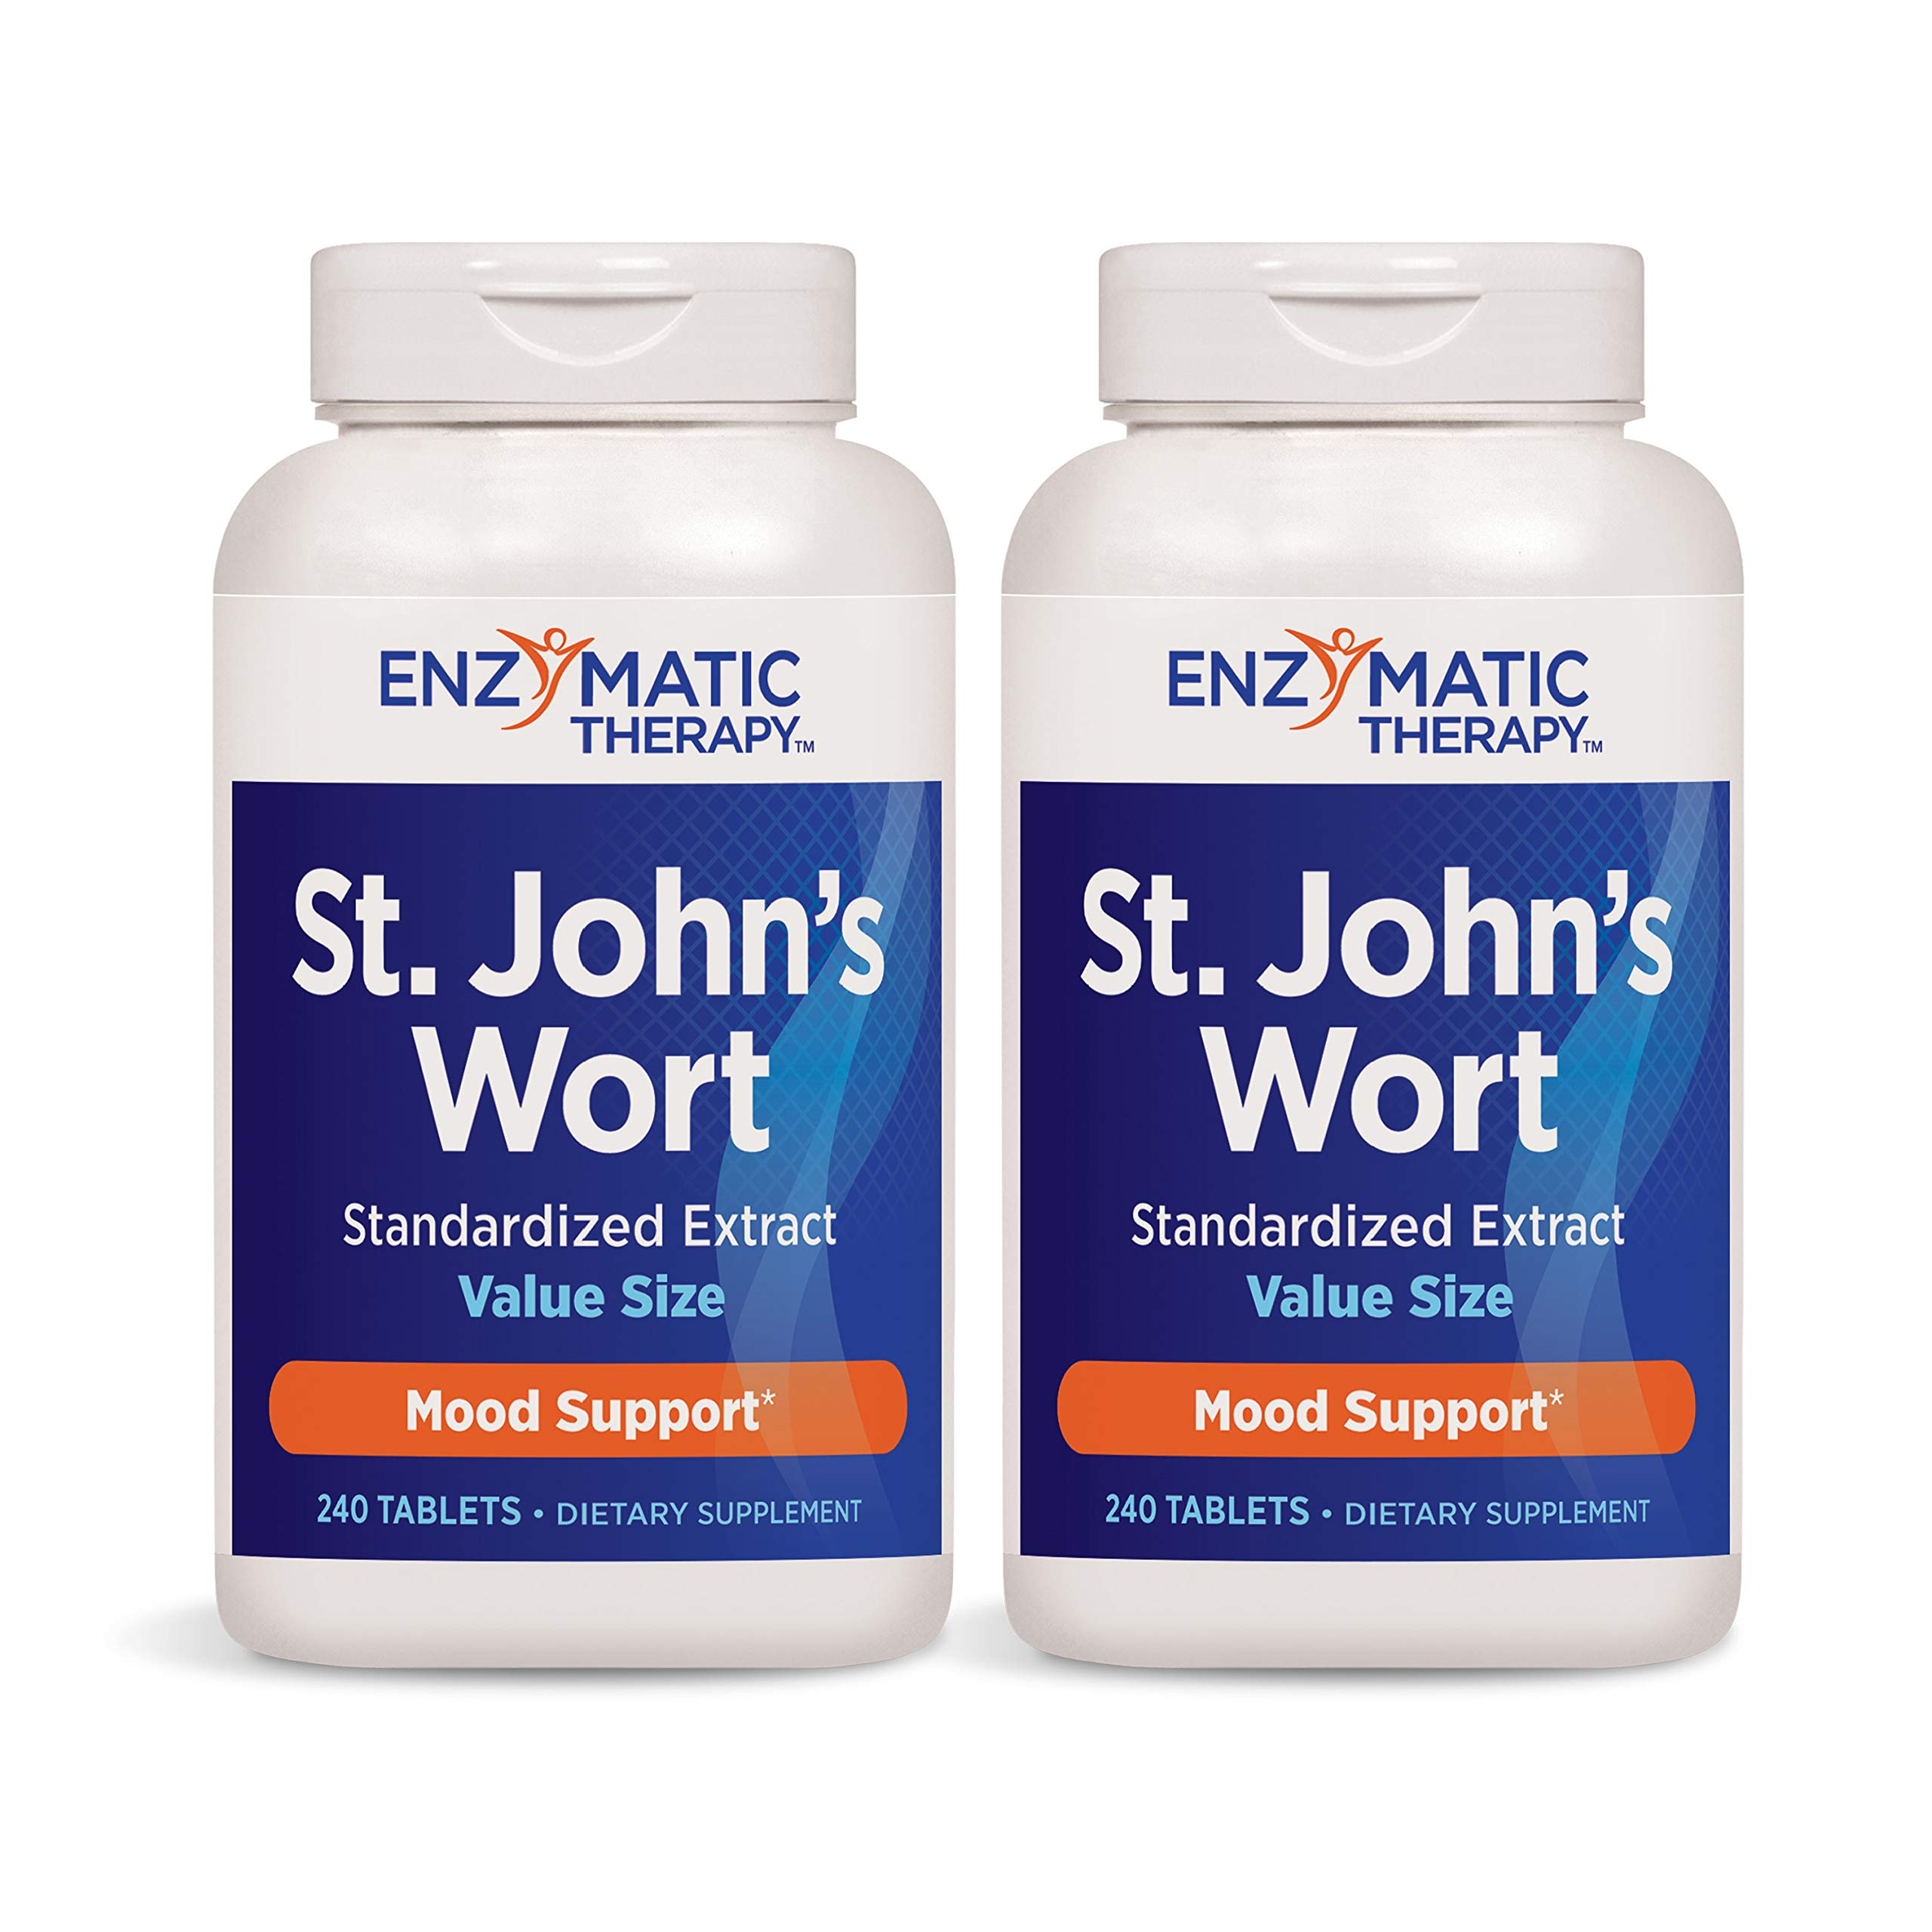 Enzymatic Therapy St. John's Wort Standardized Extract Mood Support, 240 Count (Pack of 2)